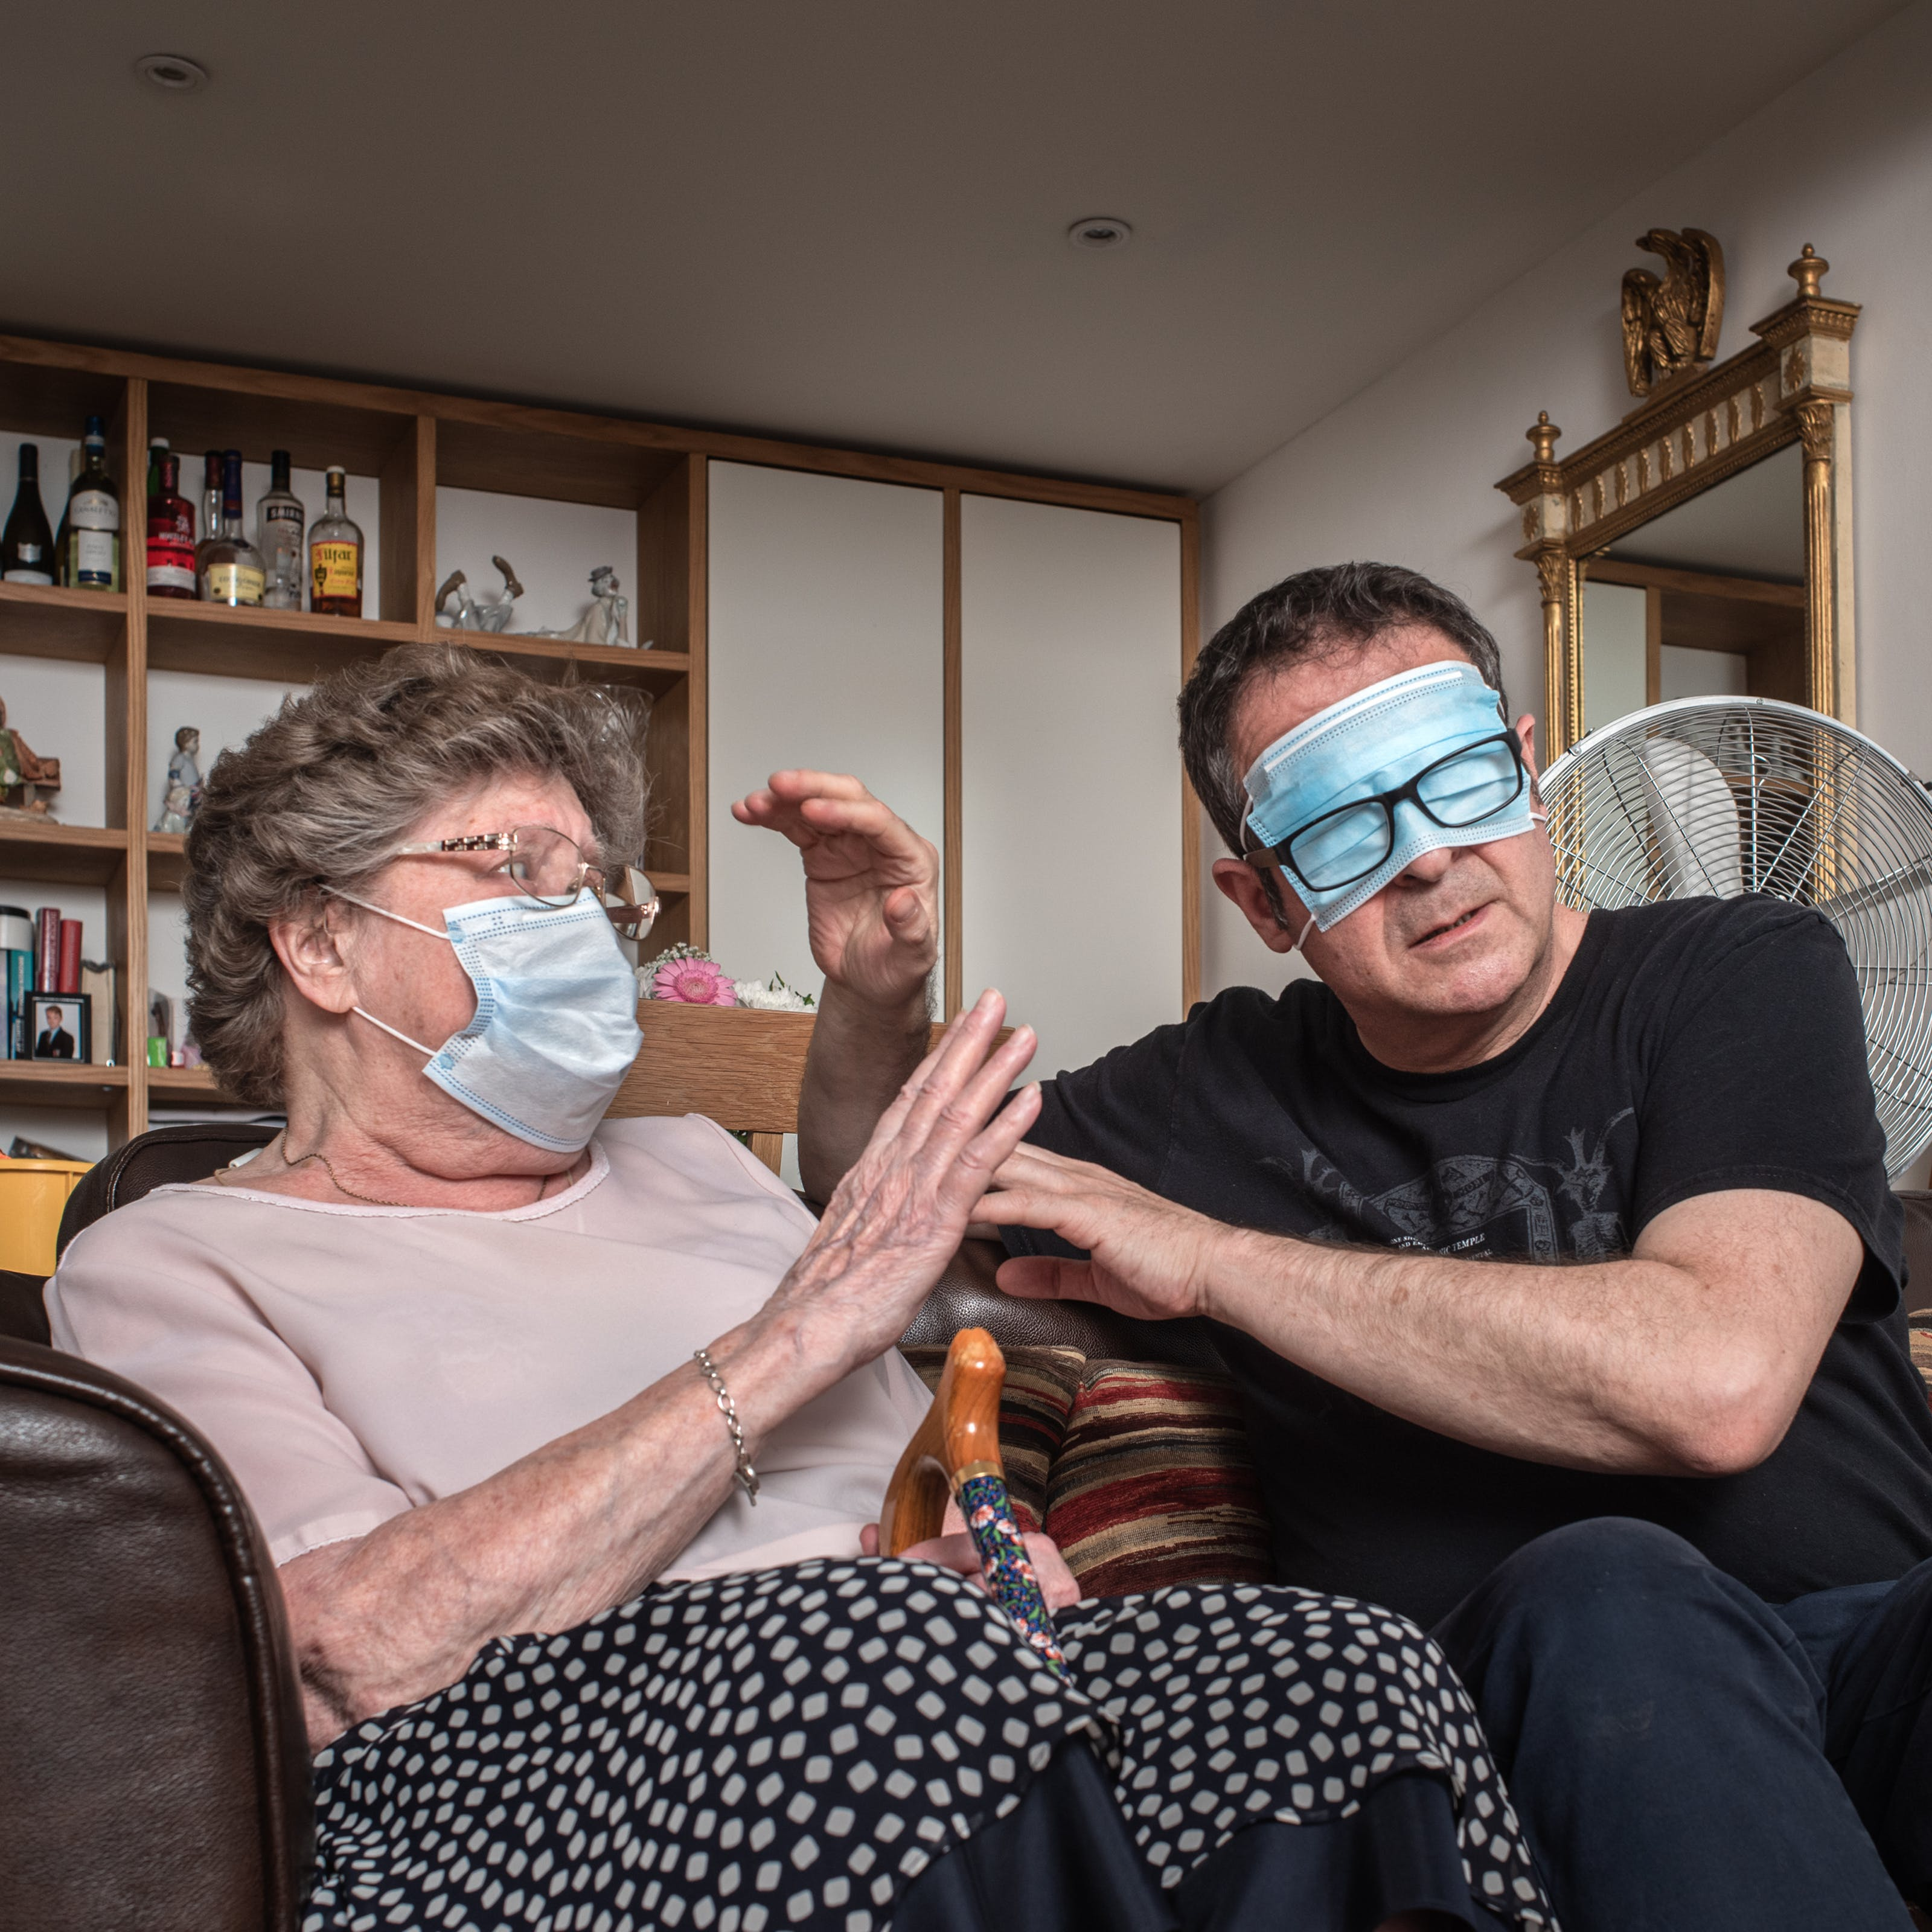 Photograph of a man and his mother sat side by side on a sofa in a living room. The man seated on the right has a medial face mask covering his eyes and is wearing his black rimmed glasses over the top of the mask. He is raising his hands towards his mother as if to try to touch and feel her face. His mother is also wearing a medical face mask but over her mouth and nose and is raising her hand in defence. Rested between her legs is the handle and top half of her walking stick. In the background is a shelving unit containing books, ornaments, bottle of spirits and family photographs. On the walls are hung an ornate gilt framed mirror and a portrait painting of a dog's head.